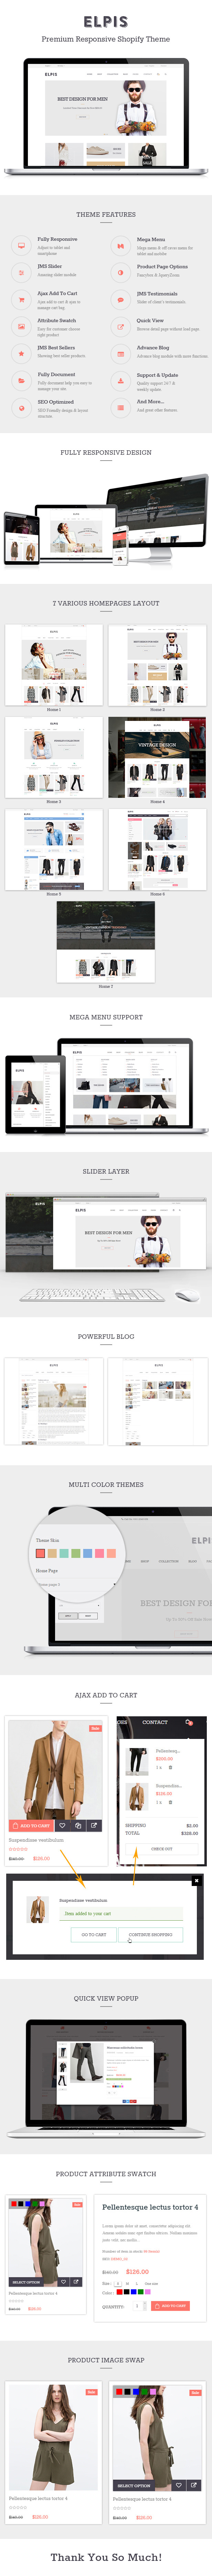 JMS Elpis theme for Shopify